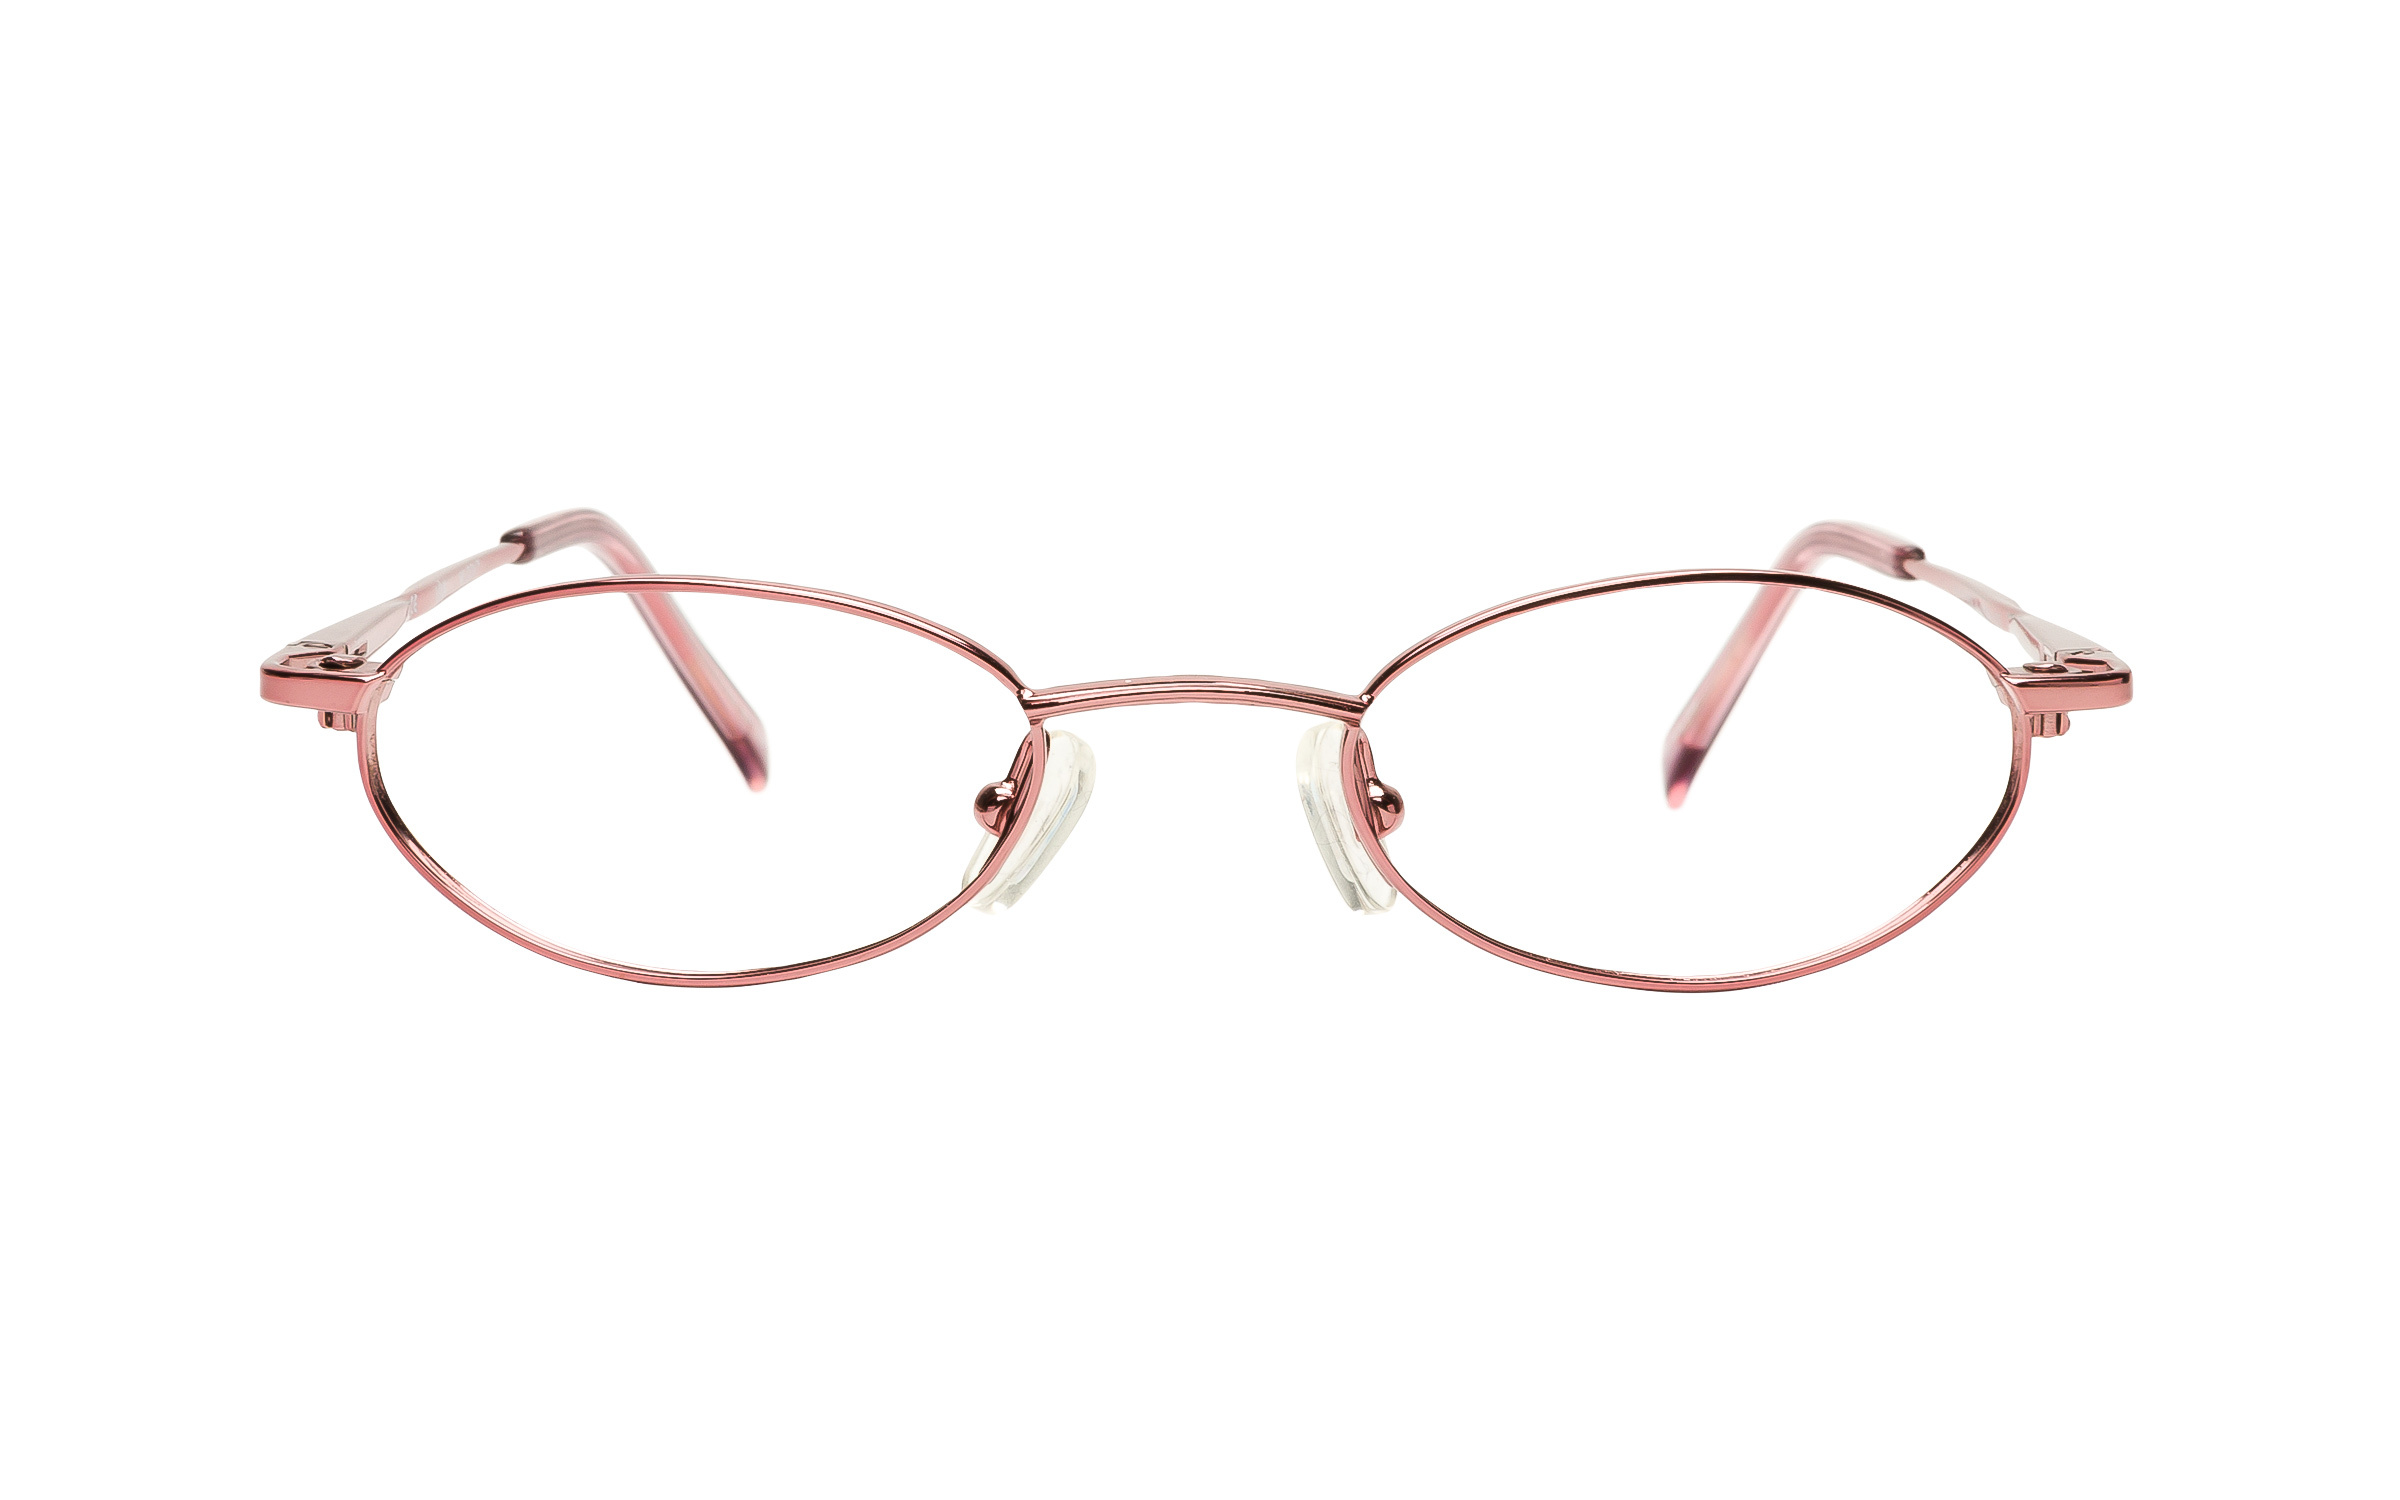 Viva_2006_Eyeglasses_and_Frame_in_Rose_Pink